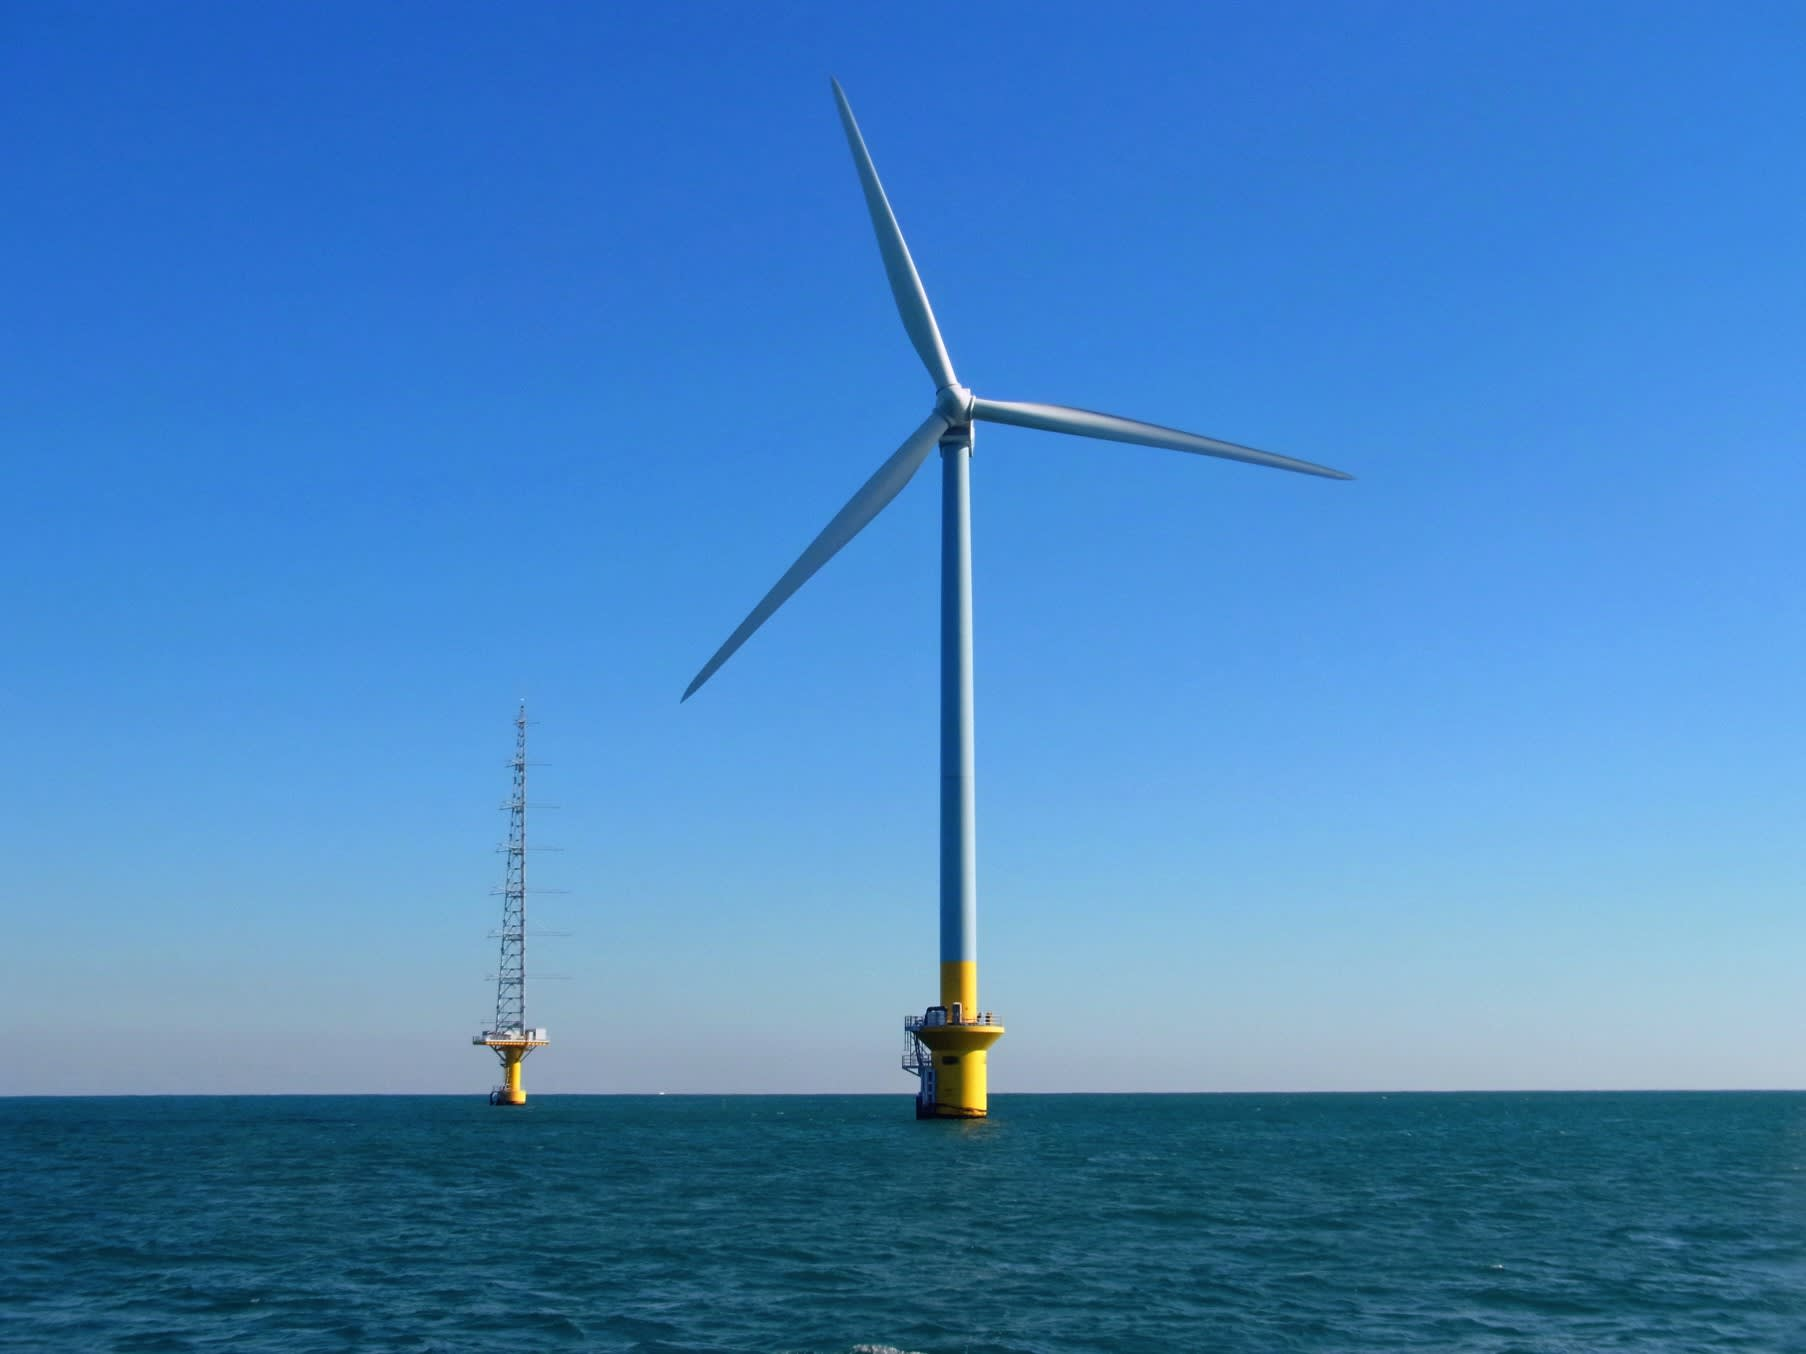 Japan plans new laws to encourage offshore wind power generation